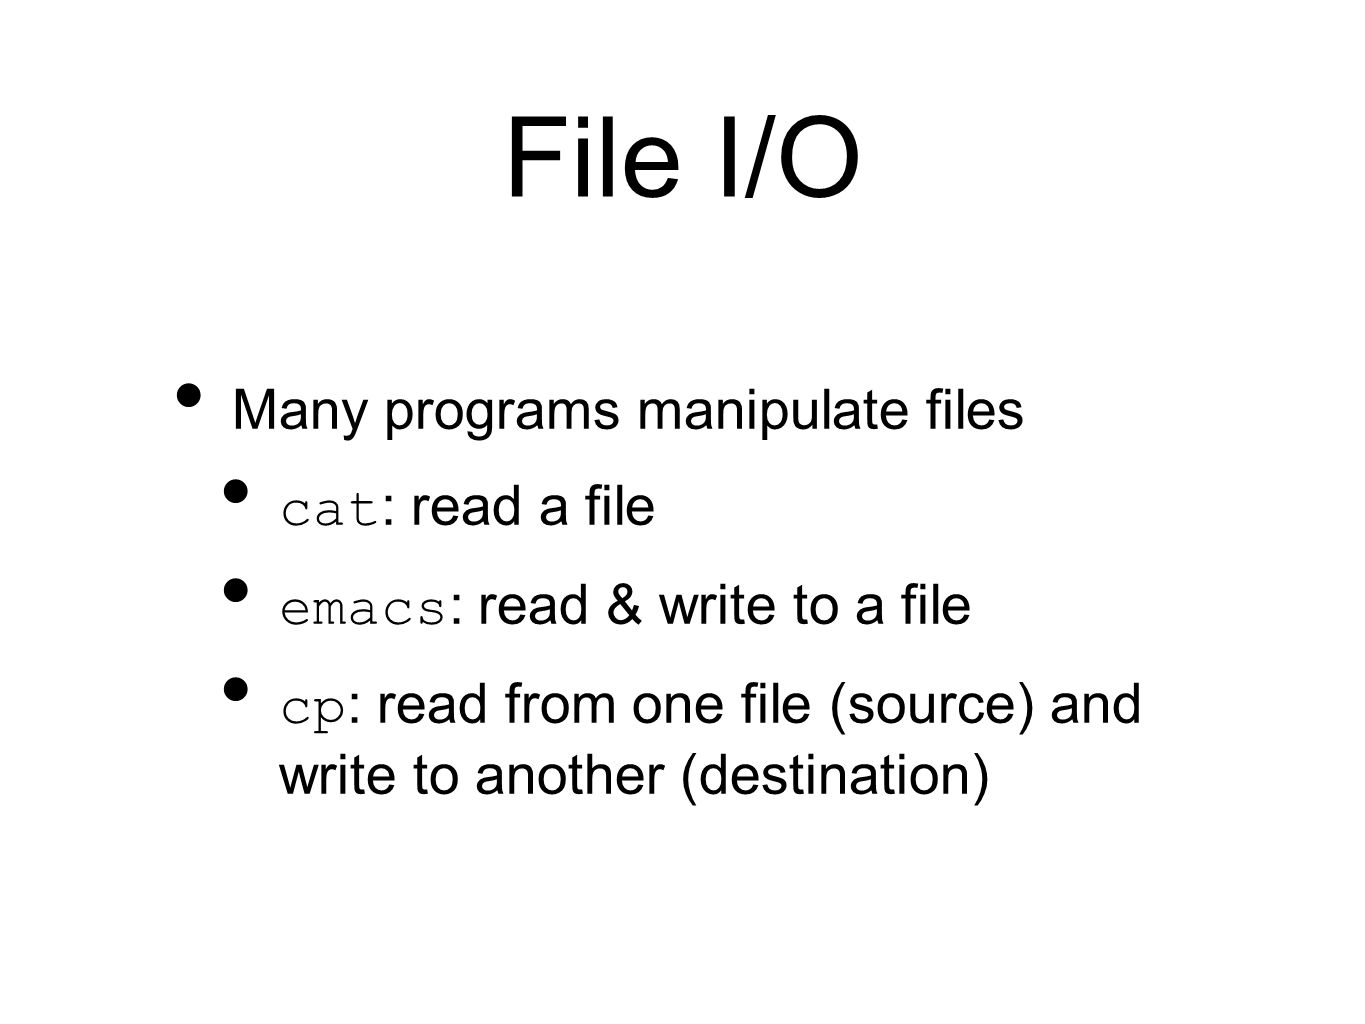 File I/O Many programs manipulate files cat : read a file emacs : read & write to a file cp : read from one file (source) and write to another (destination)